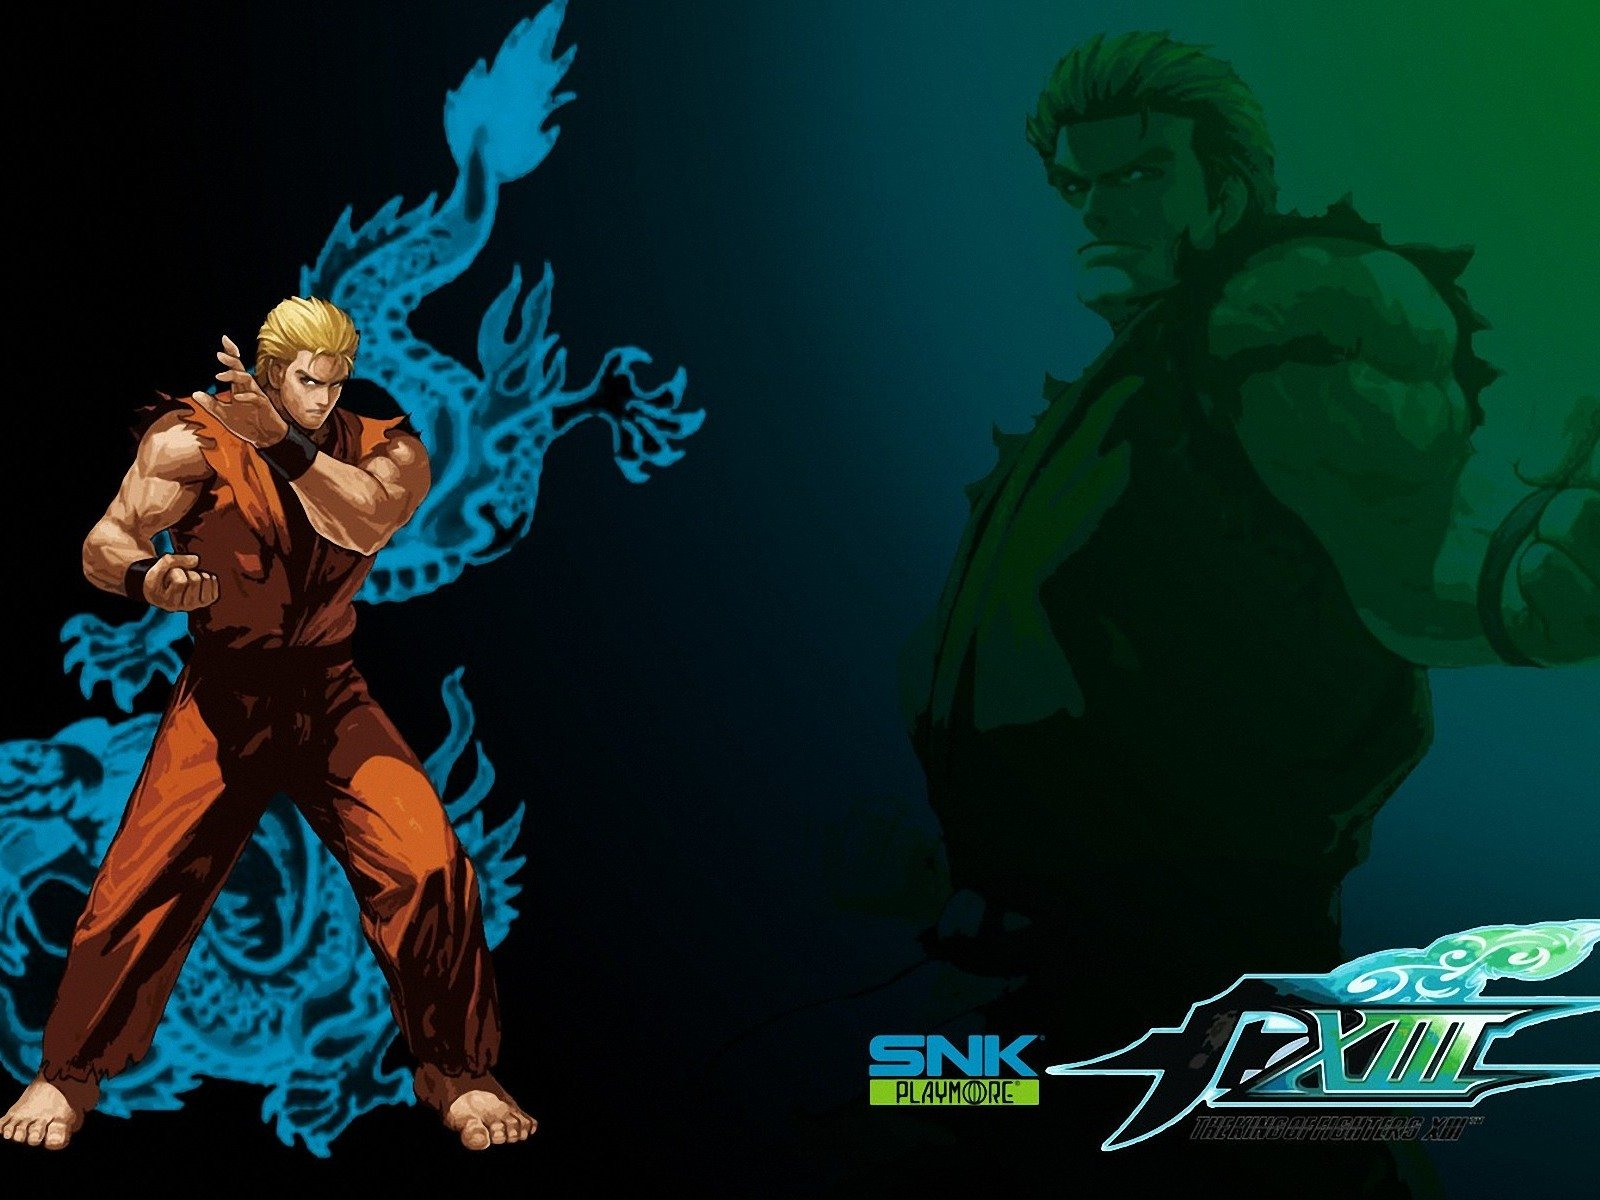 Free Download Kof 13 Ryo Wallpapersthe King Of Fighters Wallpapers